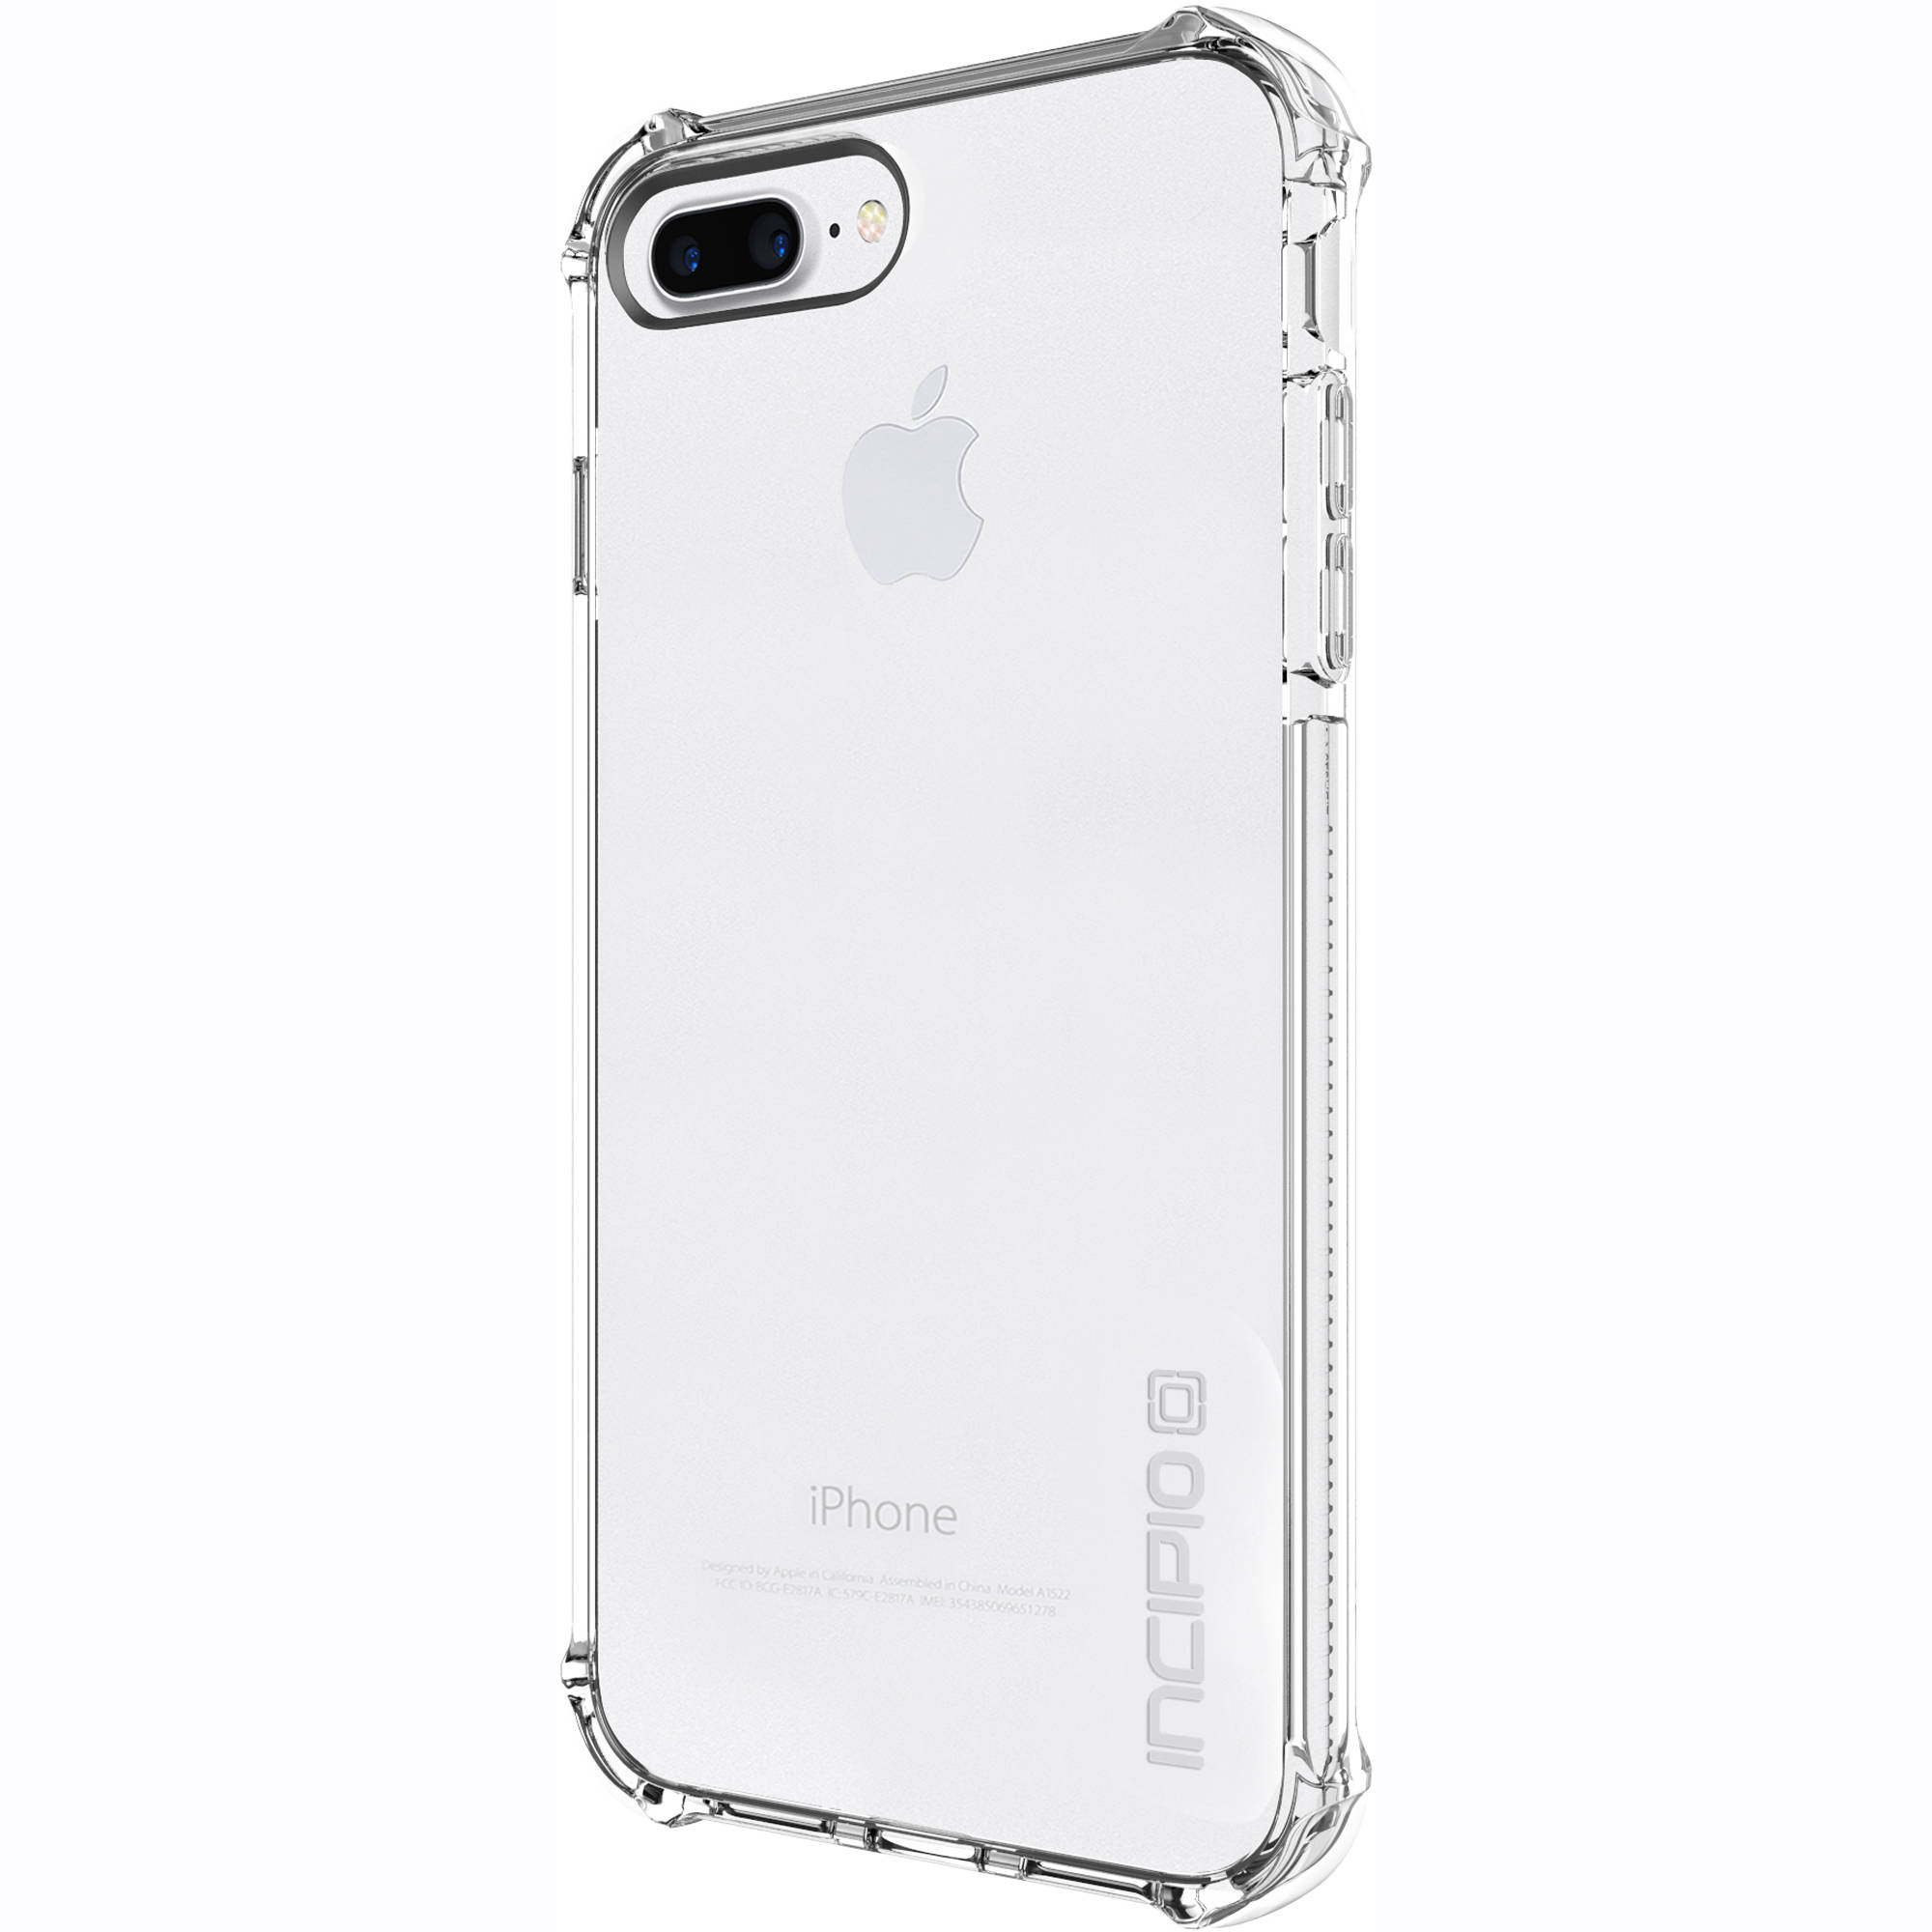 iphone 7 plus reinforced case